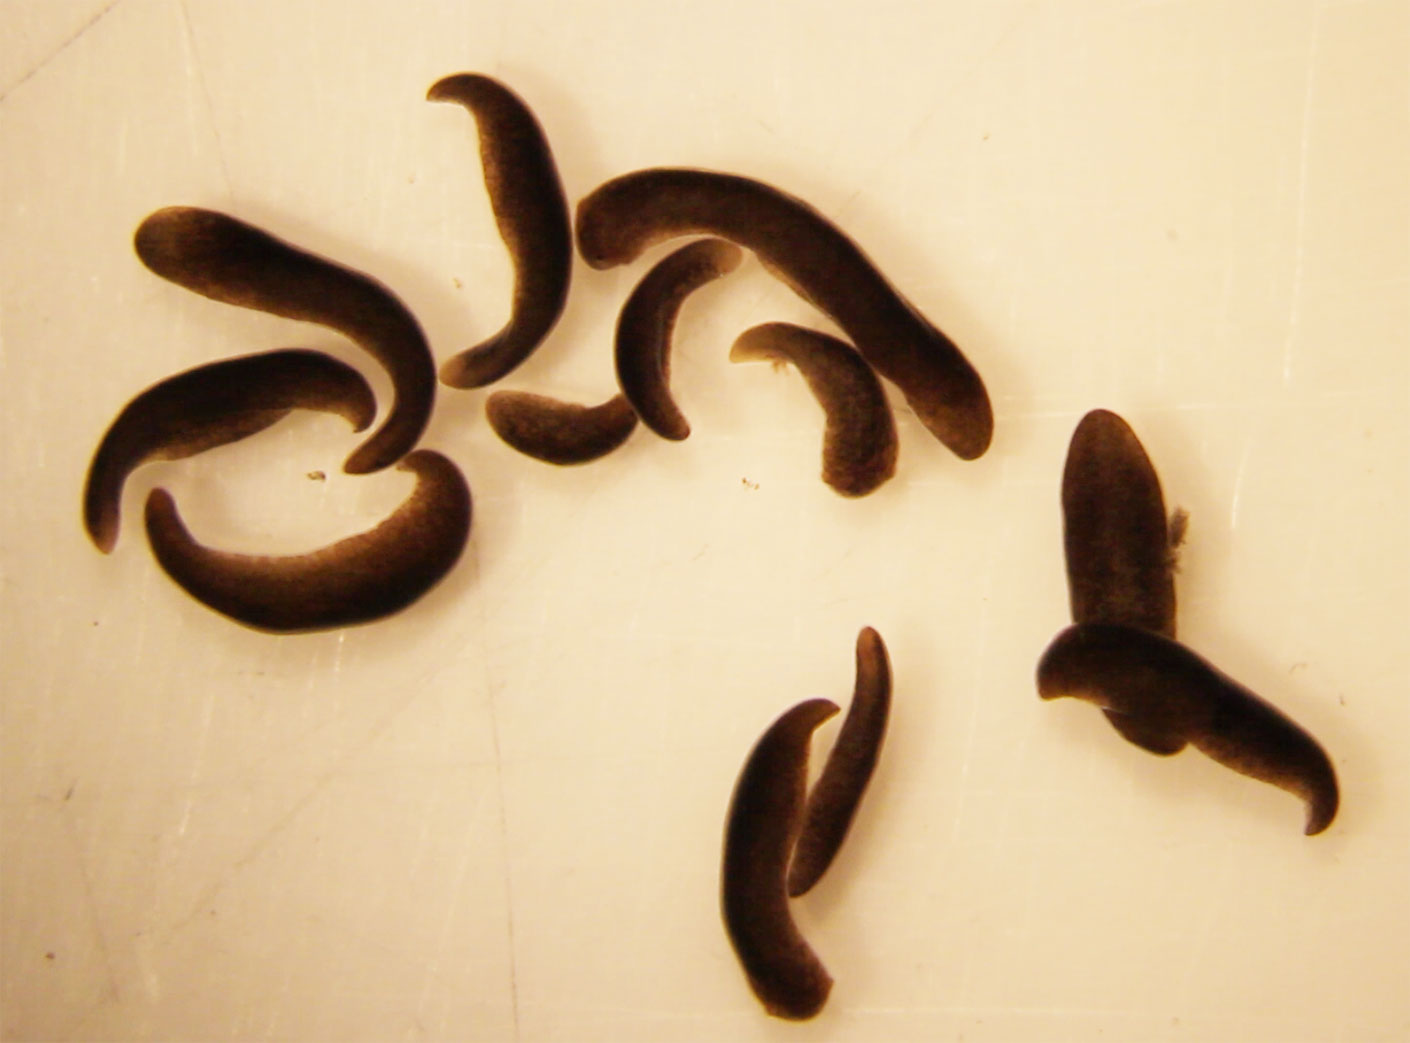 flatworms from space station fig3c